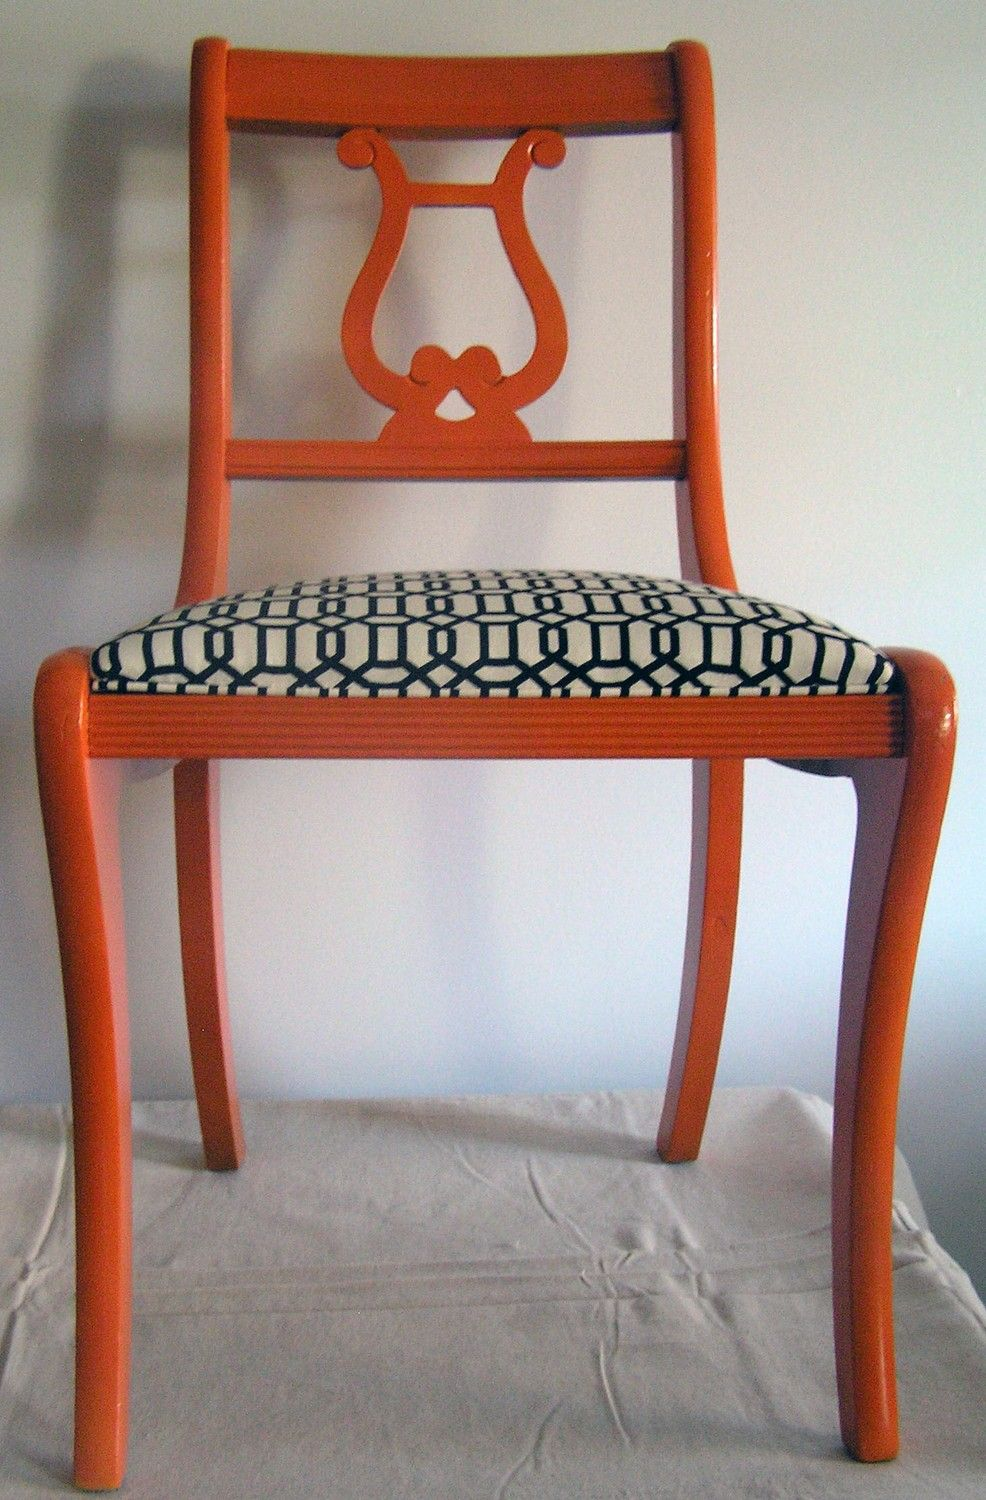 upcycled chair - orange fiddle back side chair with black and